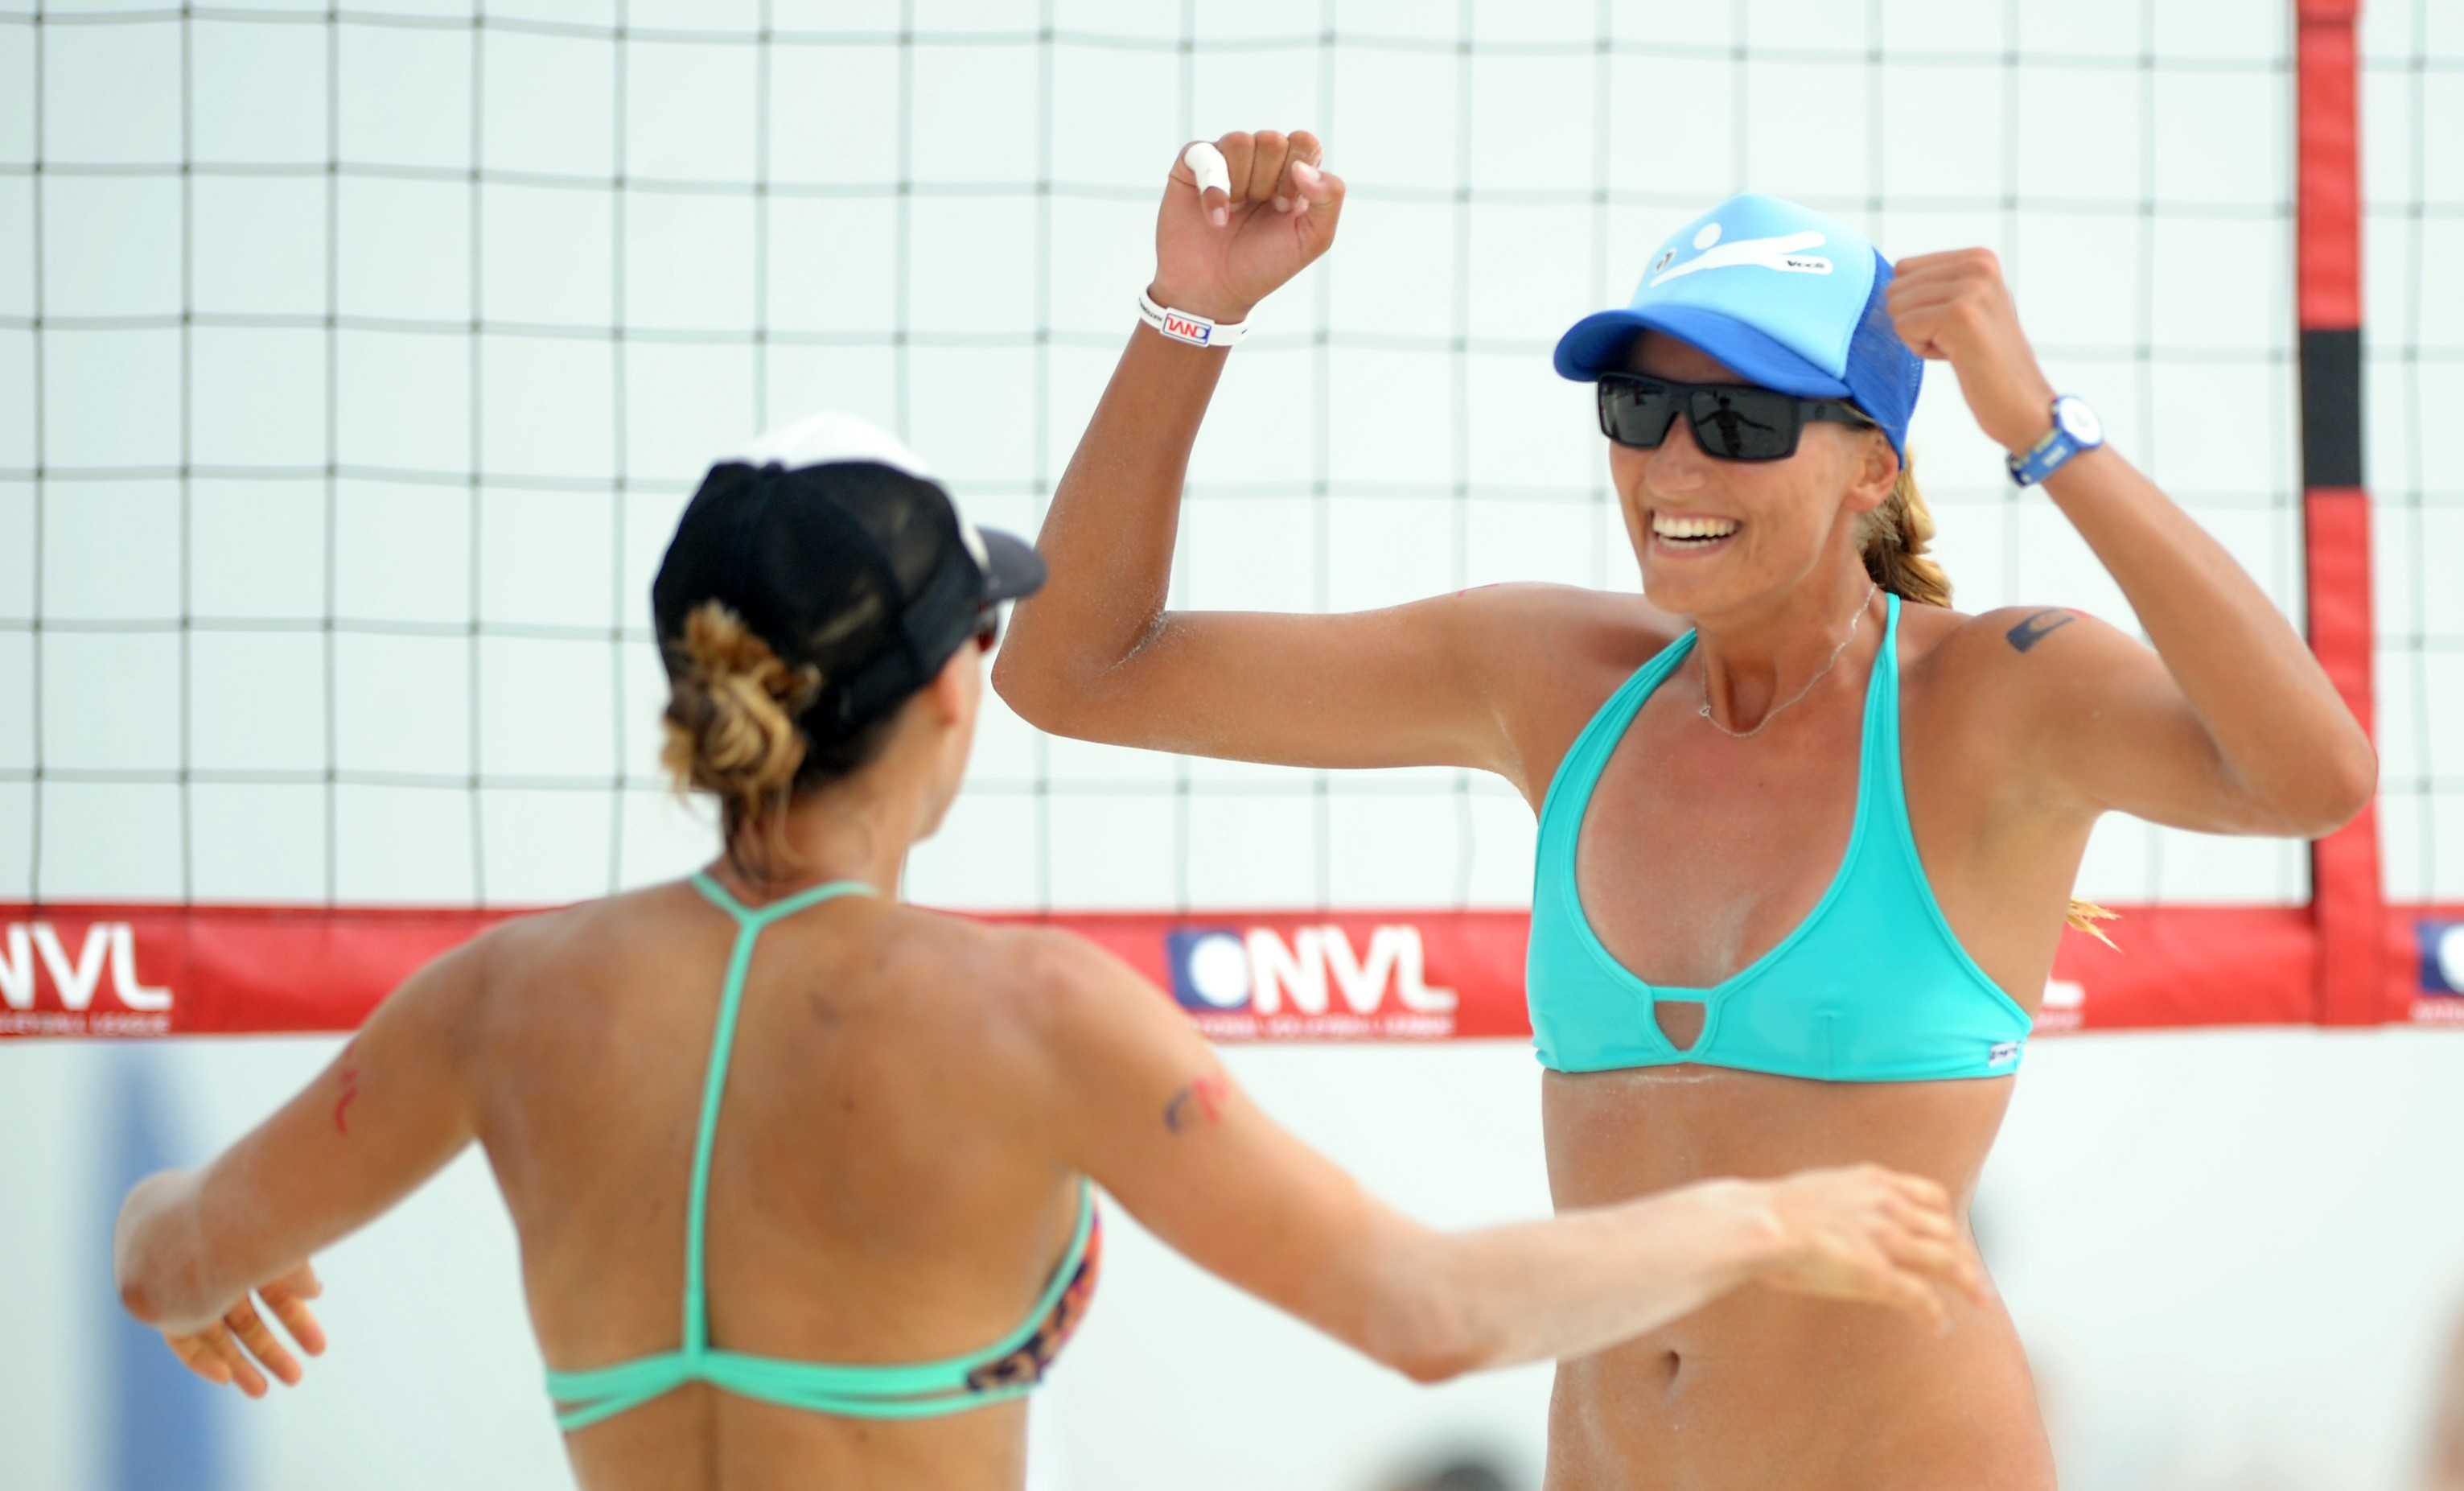 TOP SEEDS DAVE PALM & MIKE PLACEK AND  BROOKE NILES & KAROLINA SOWALA TAKE HOME WINS  AT NVL'S SEASON OPENER IN PANAMA CITY BEACH